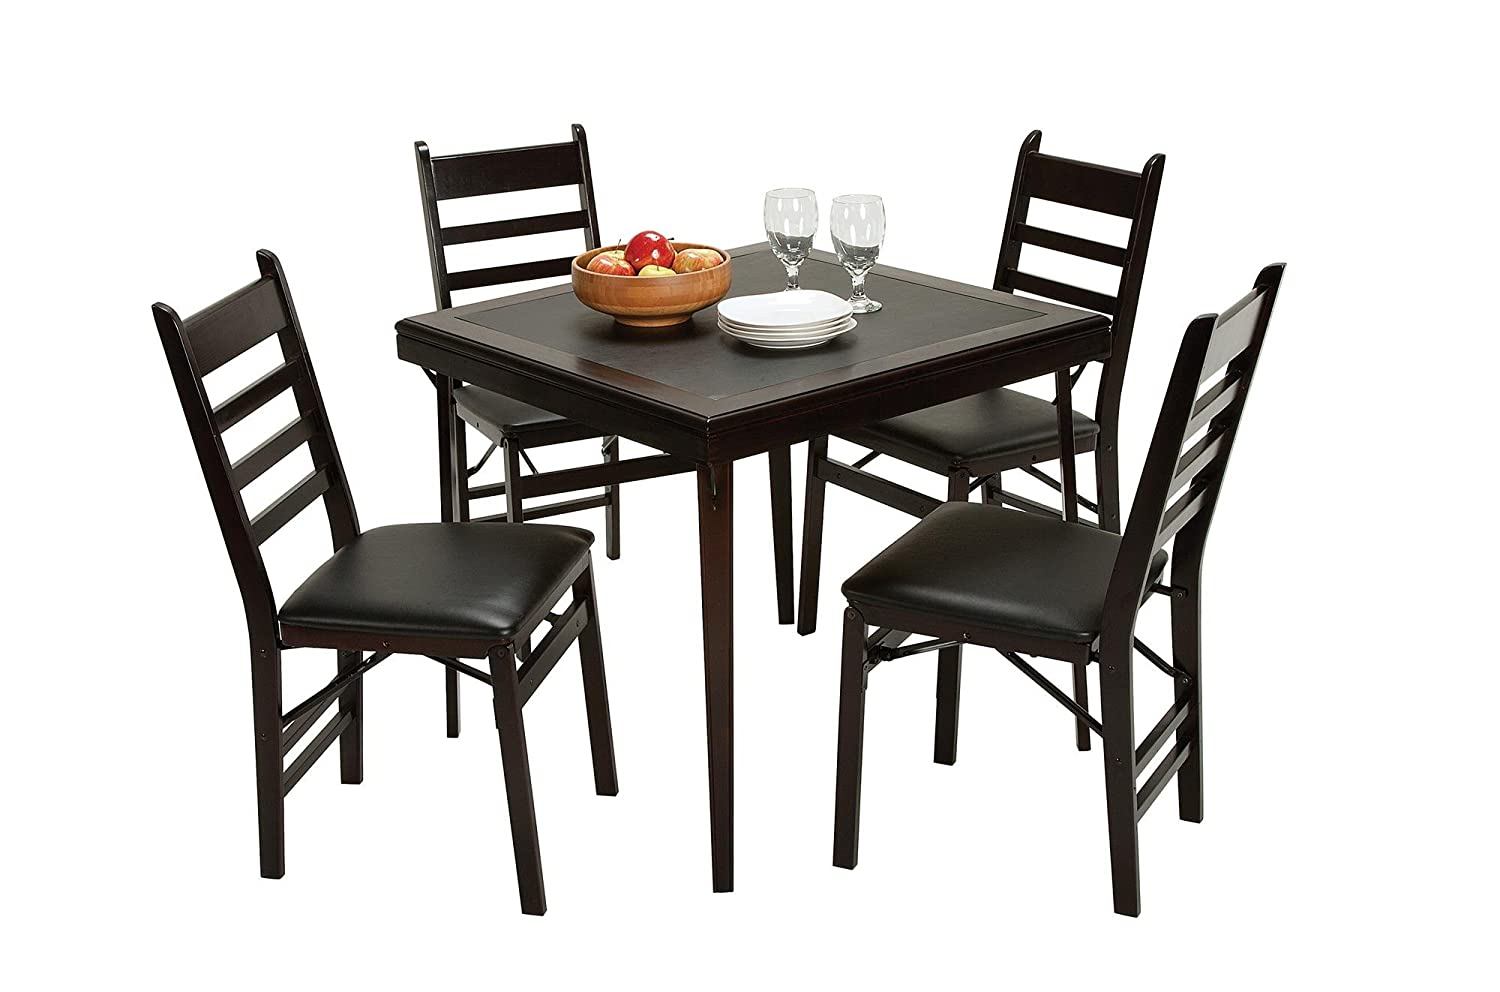 Cosco Folding Espresso Wood Table Square with Vinyl Inset Dorel Home Furnishings 14260ESPE